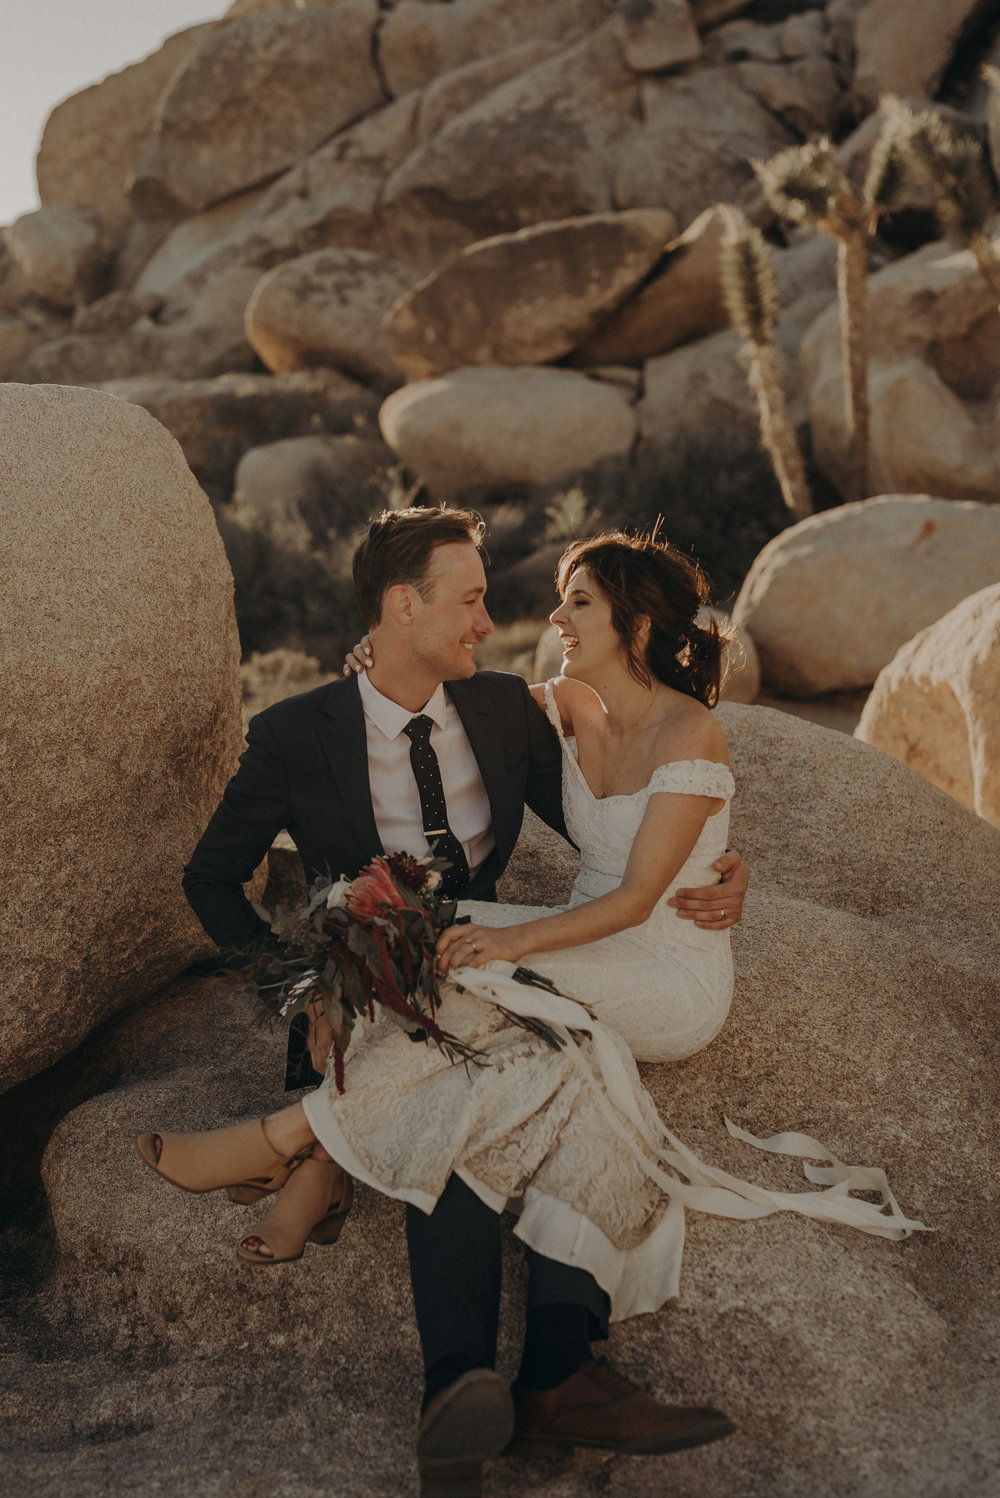 Joshua Tree Elopement - Los Angeles Wedding Photographers - IsaiahAndTaylor.com-077.jpg